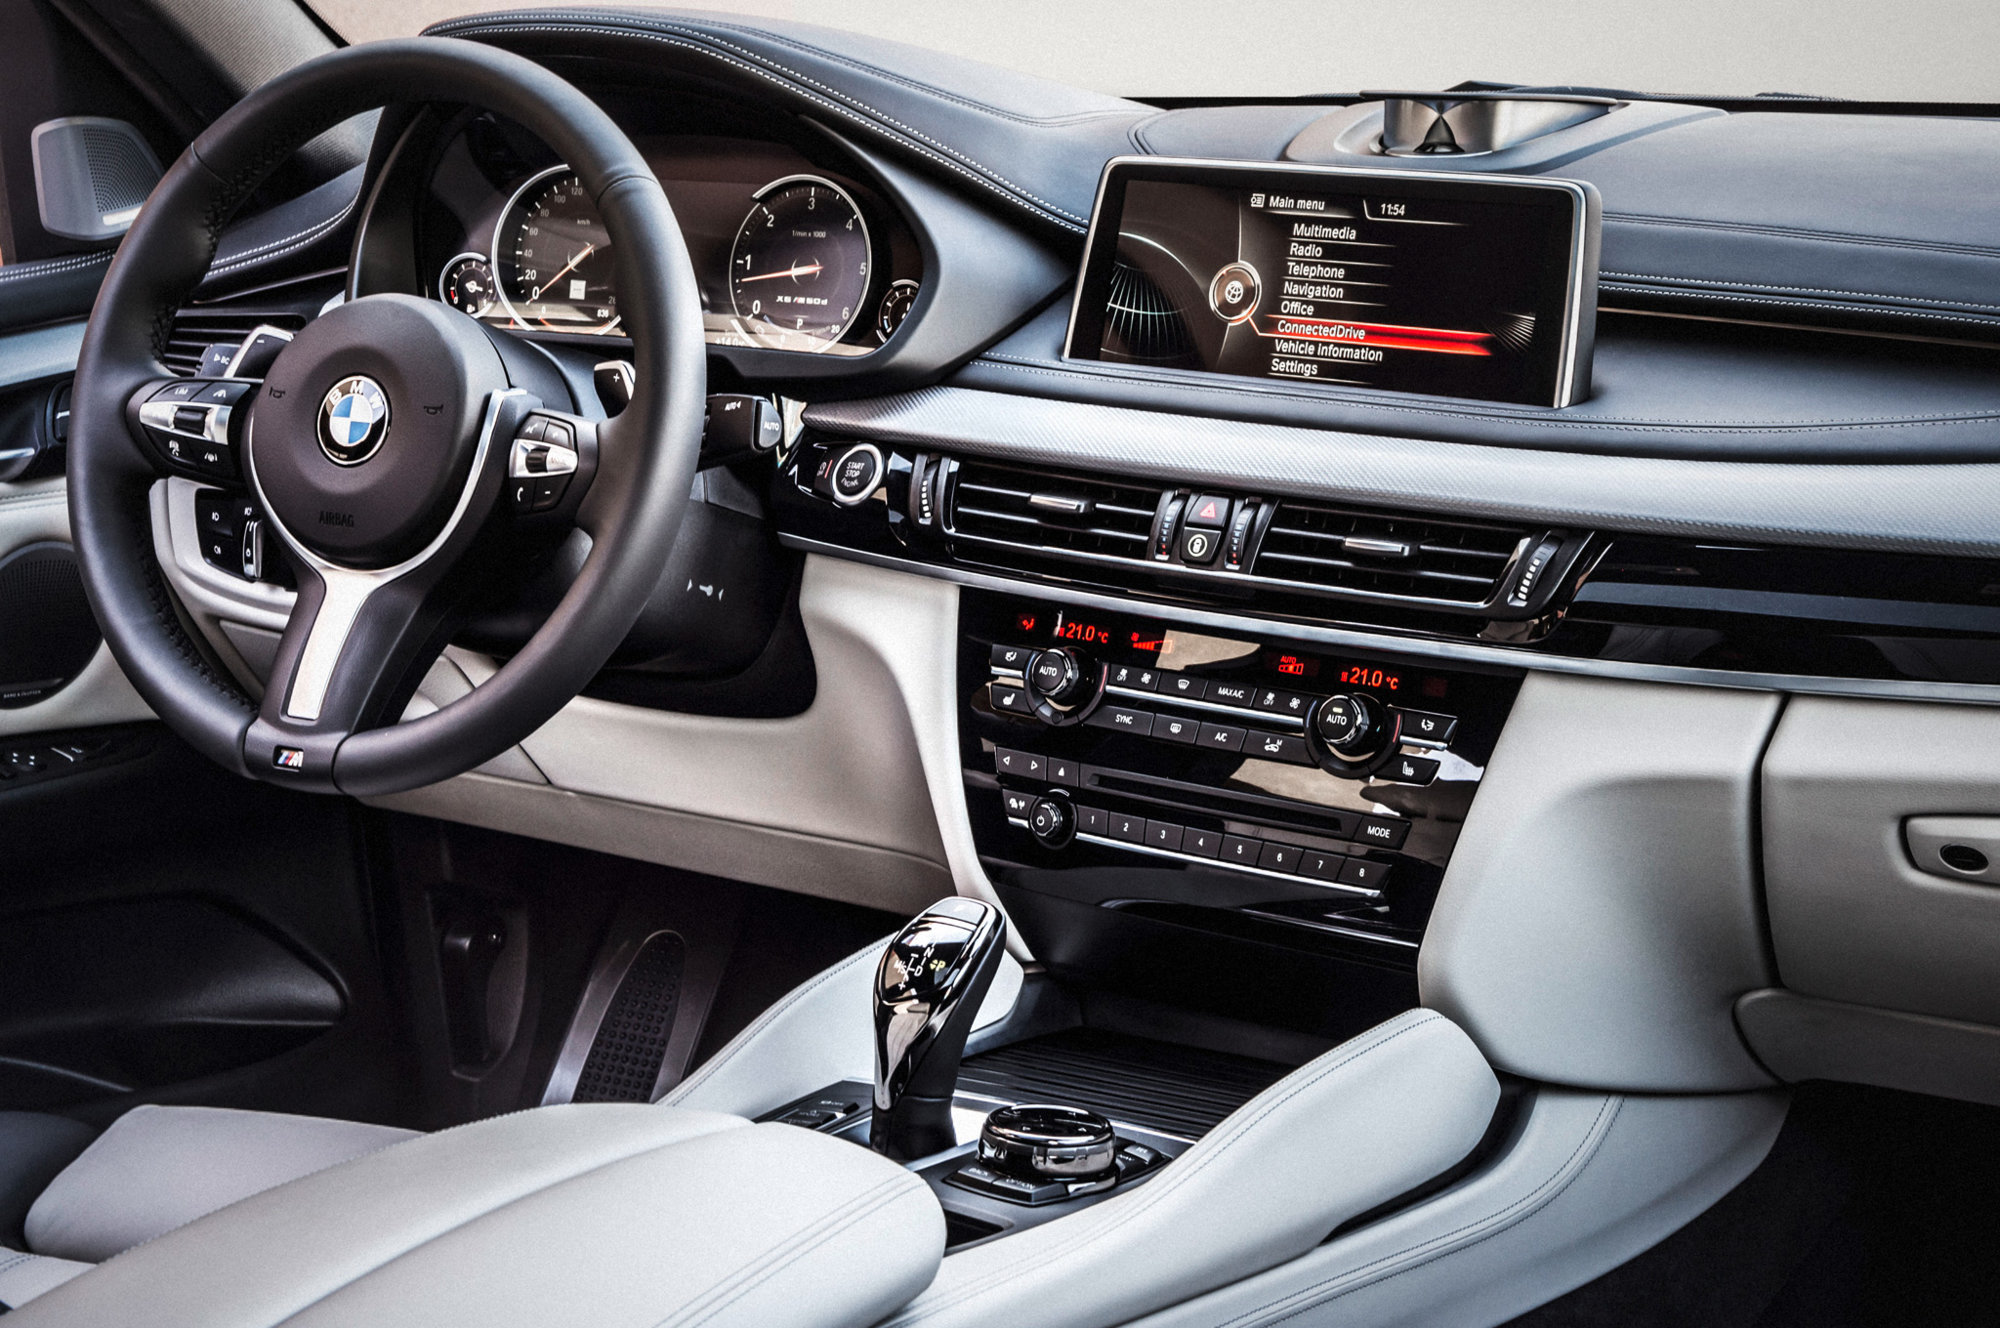 2015-bmw-x6-interior-from-passenger-side.jpg